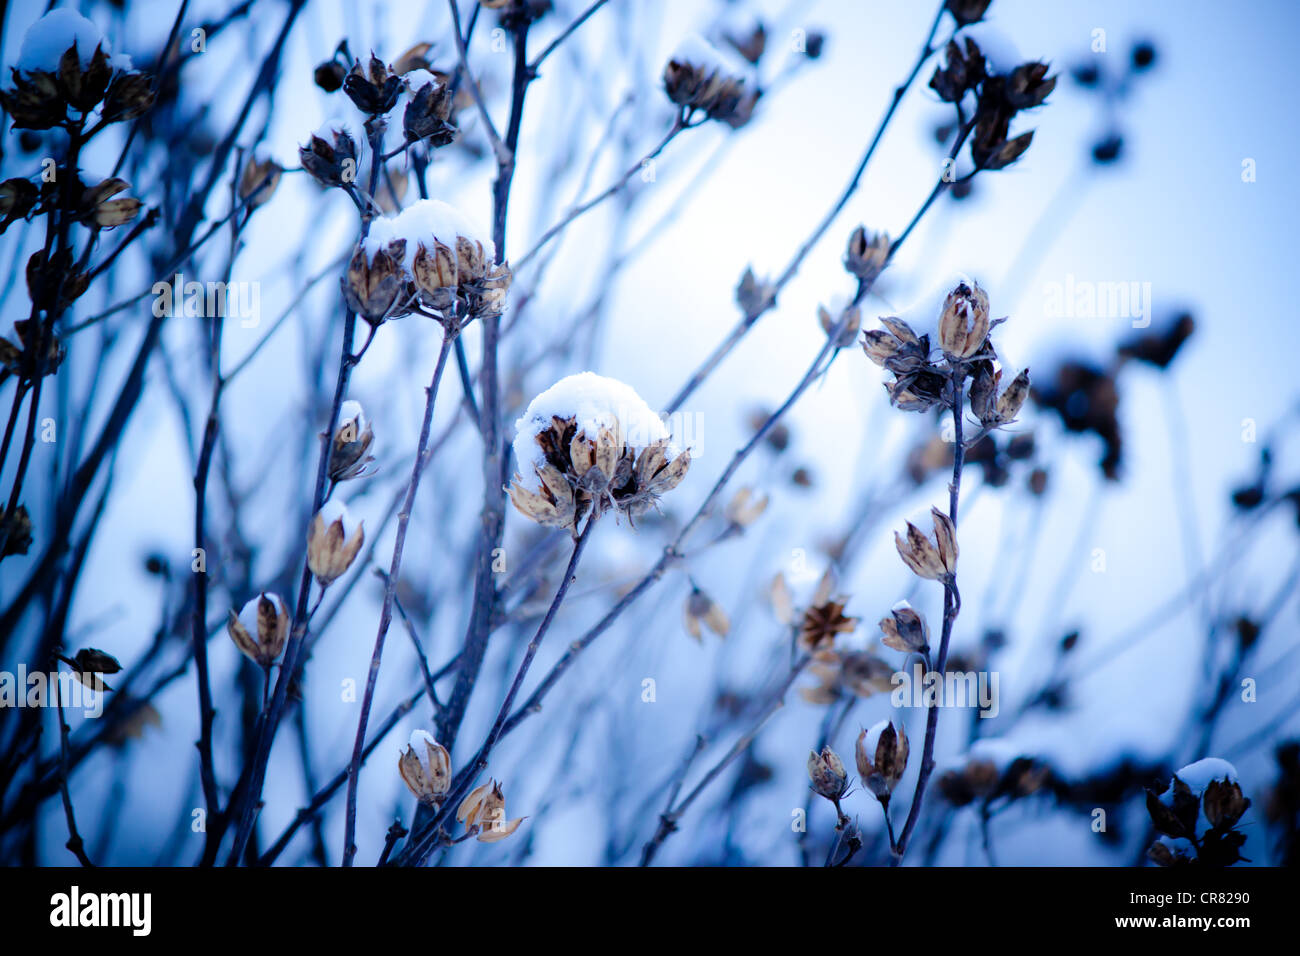 Flowers in the Snow - Stock Image